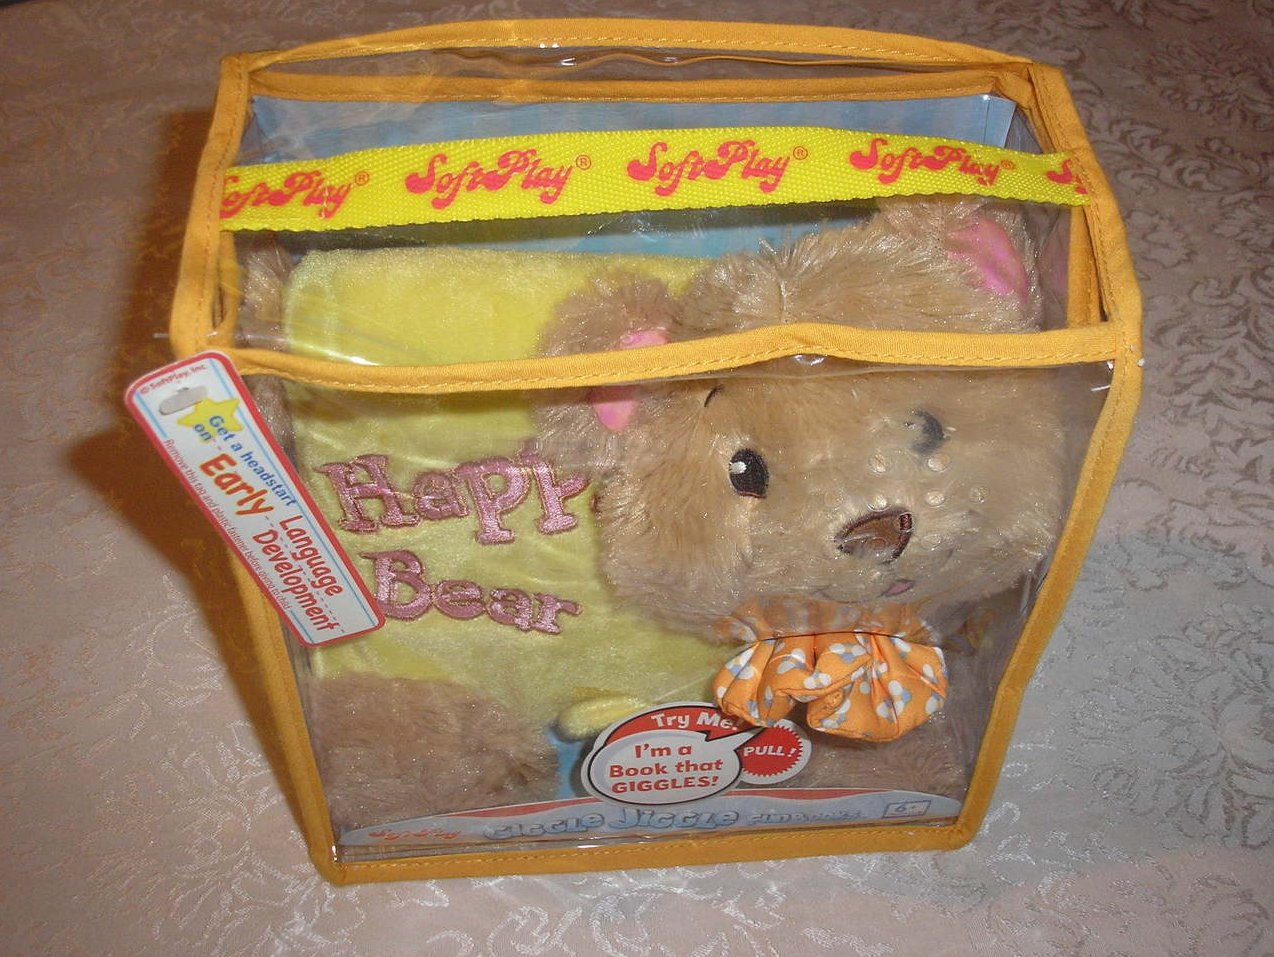 Happy Bear SoftPlay Plush Interactive Book for Baby brand new in case